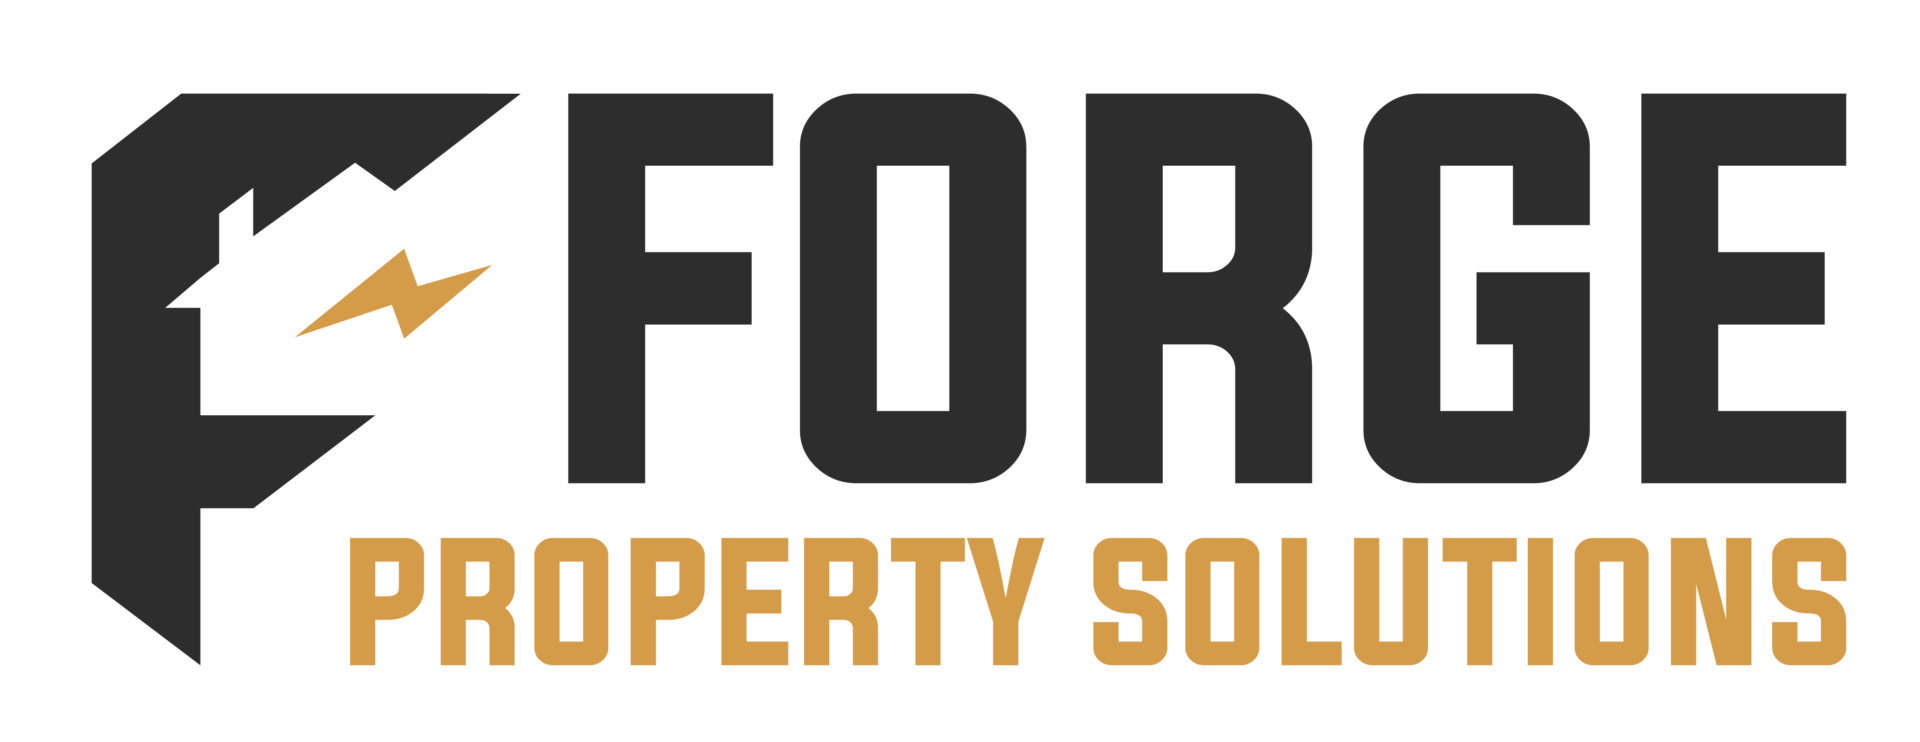 Forge Property Solutions Continues to Help Homeowners in the Stockton California Metro Area